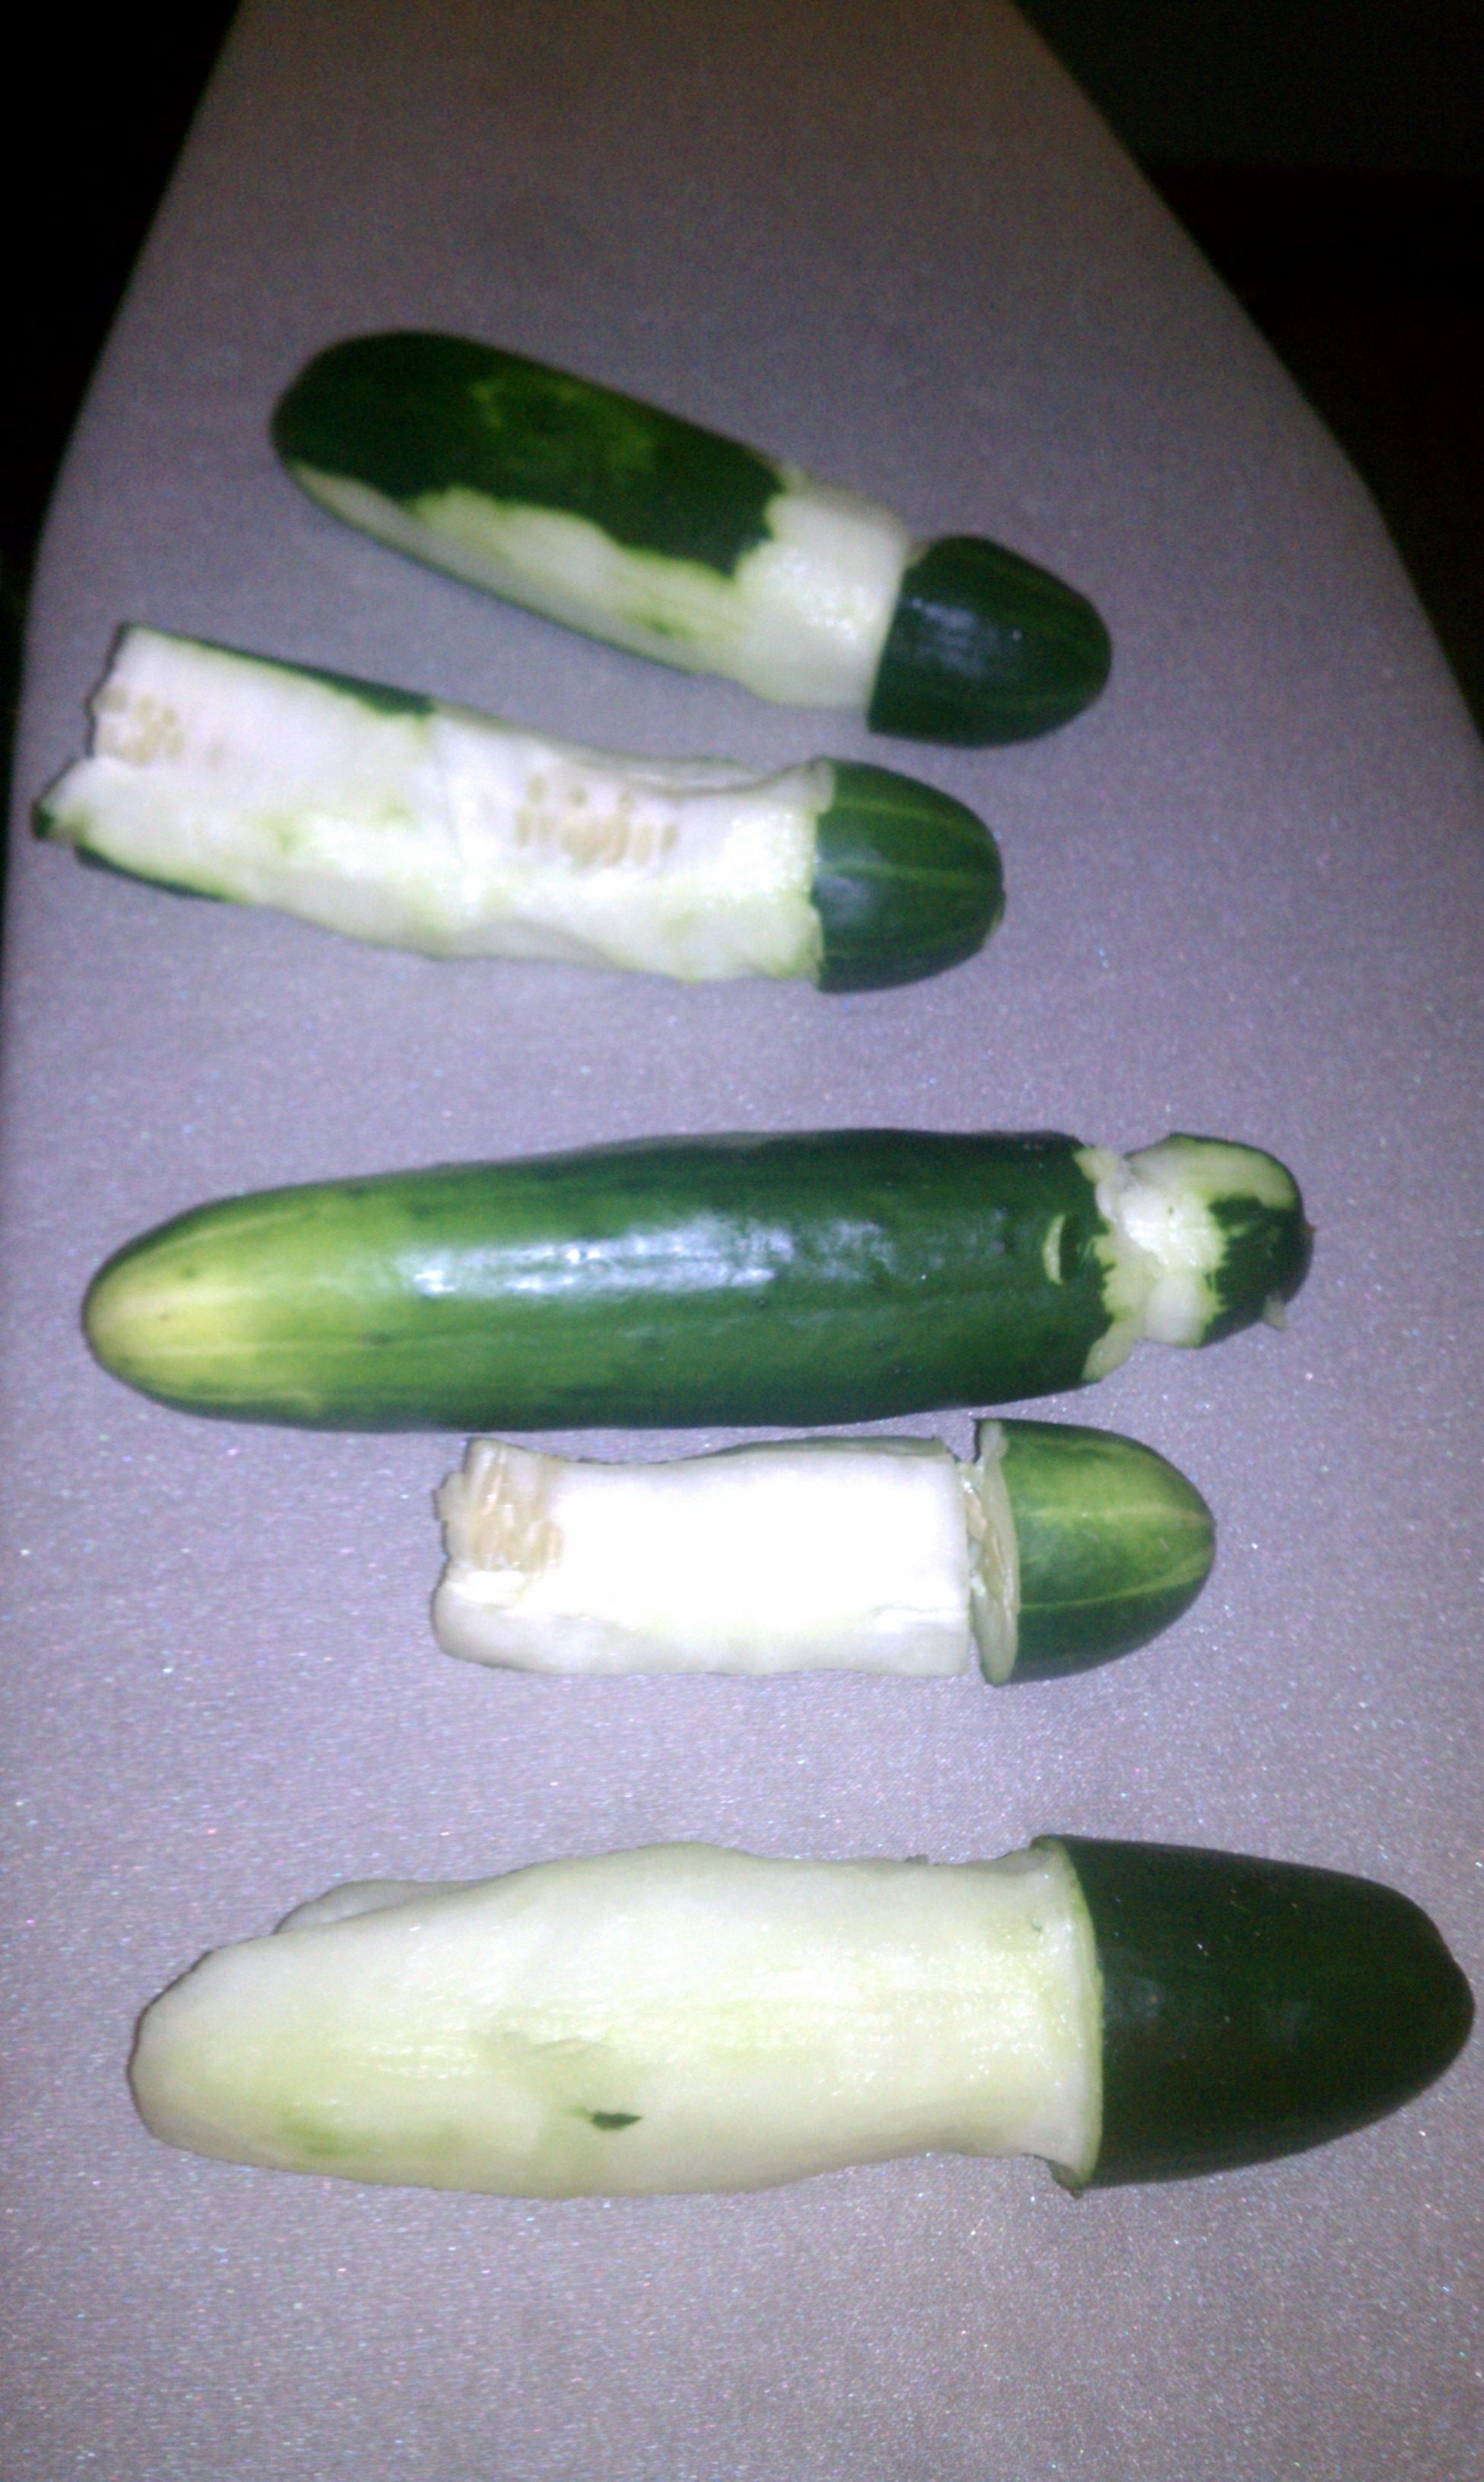 Actual Food Porno.....Bachelorette Party Penis-carving. see who can ...